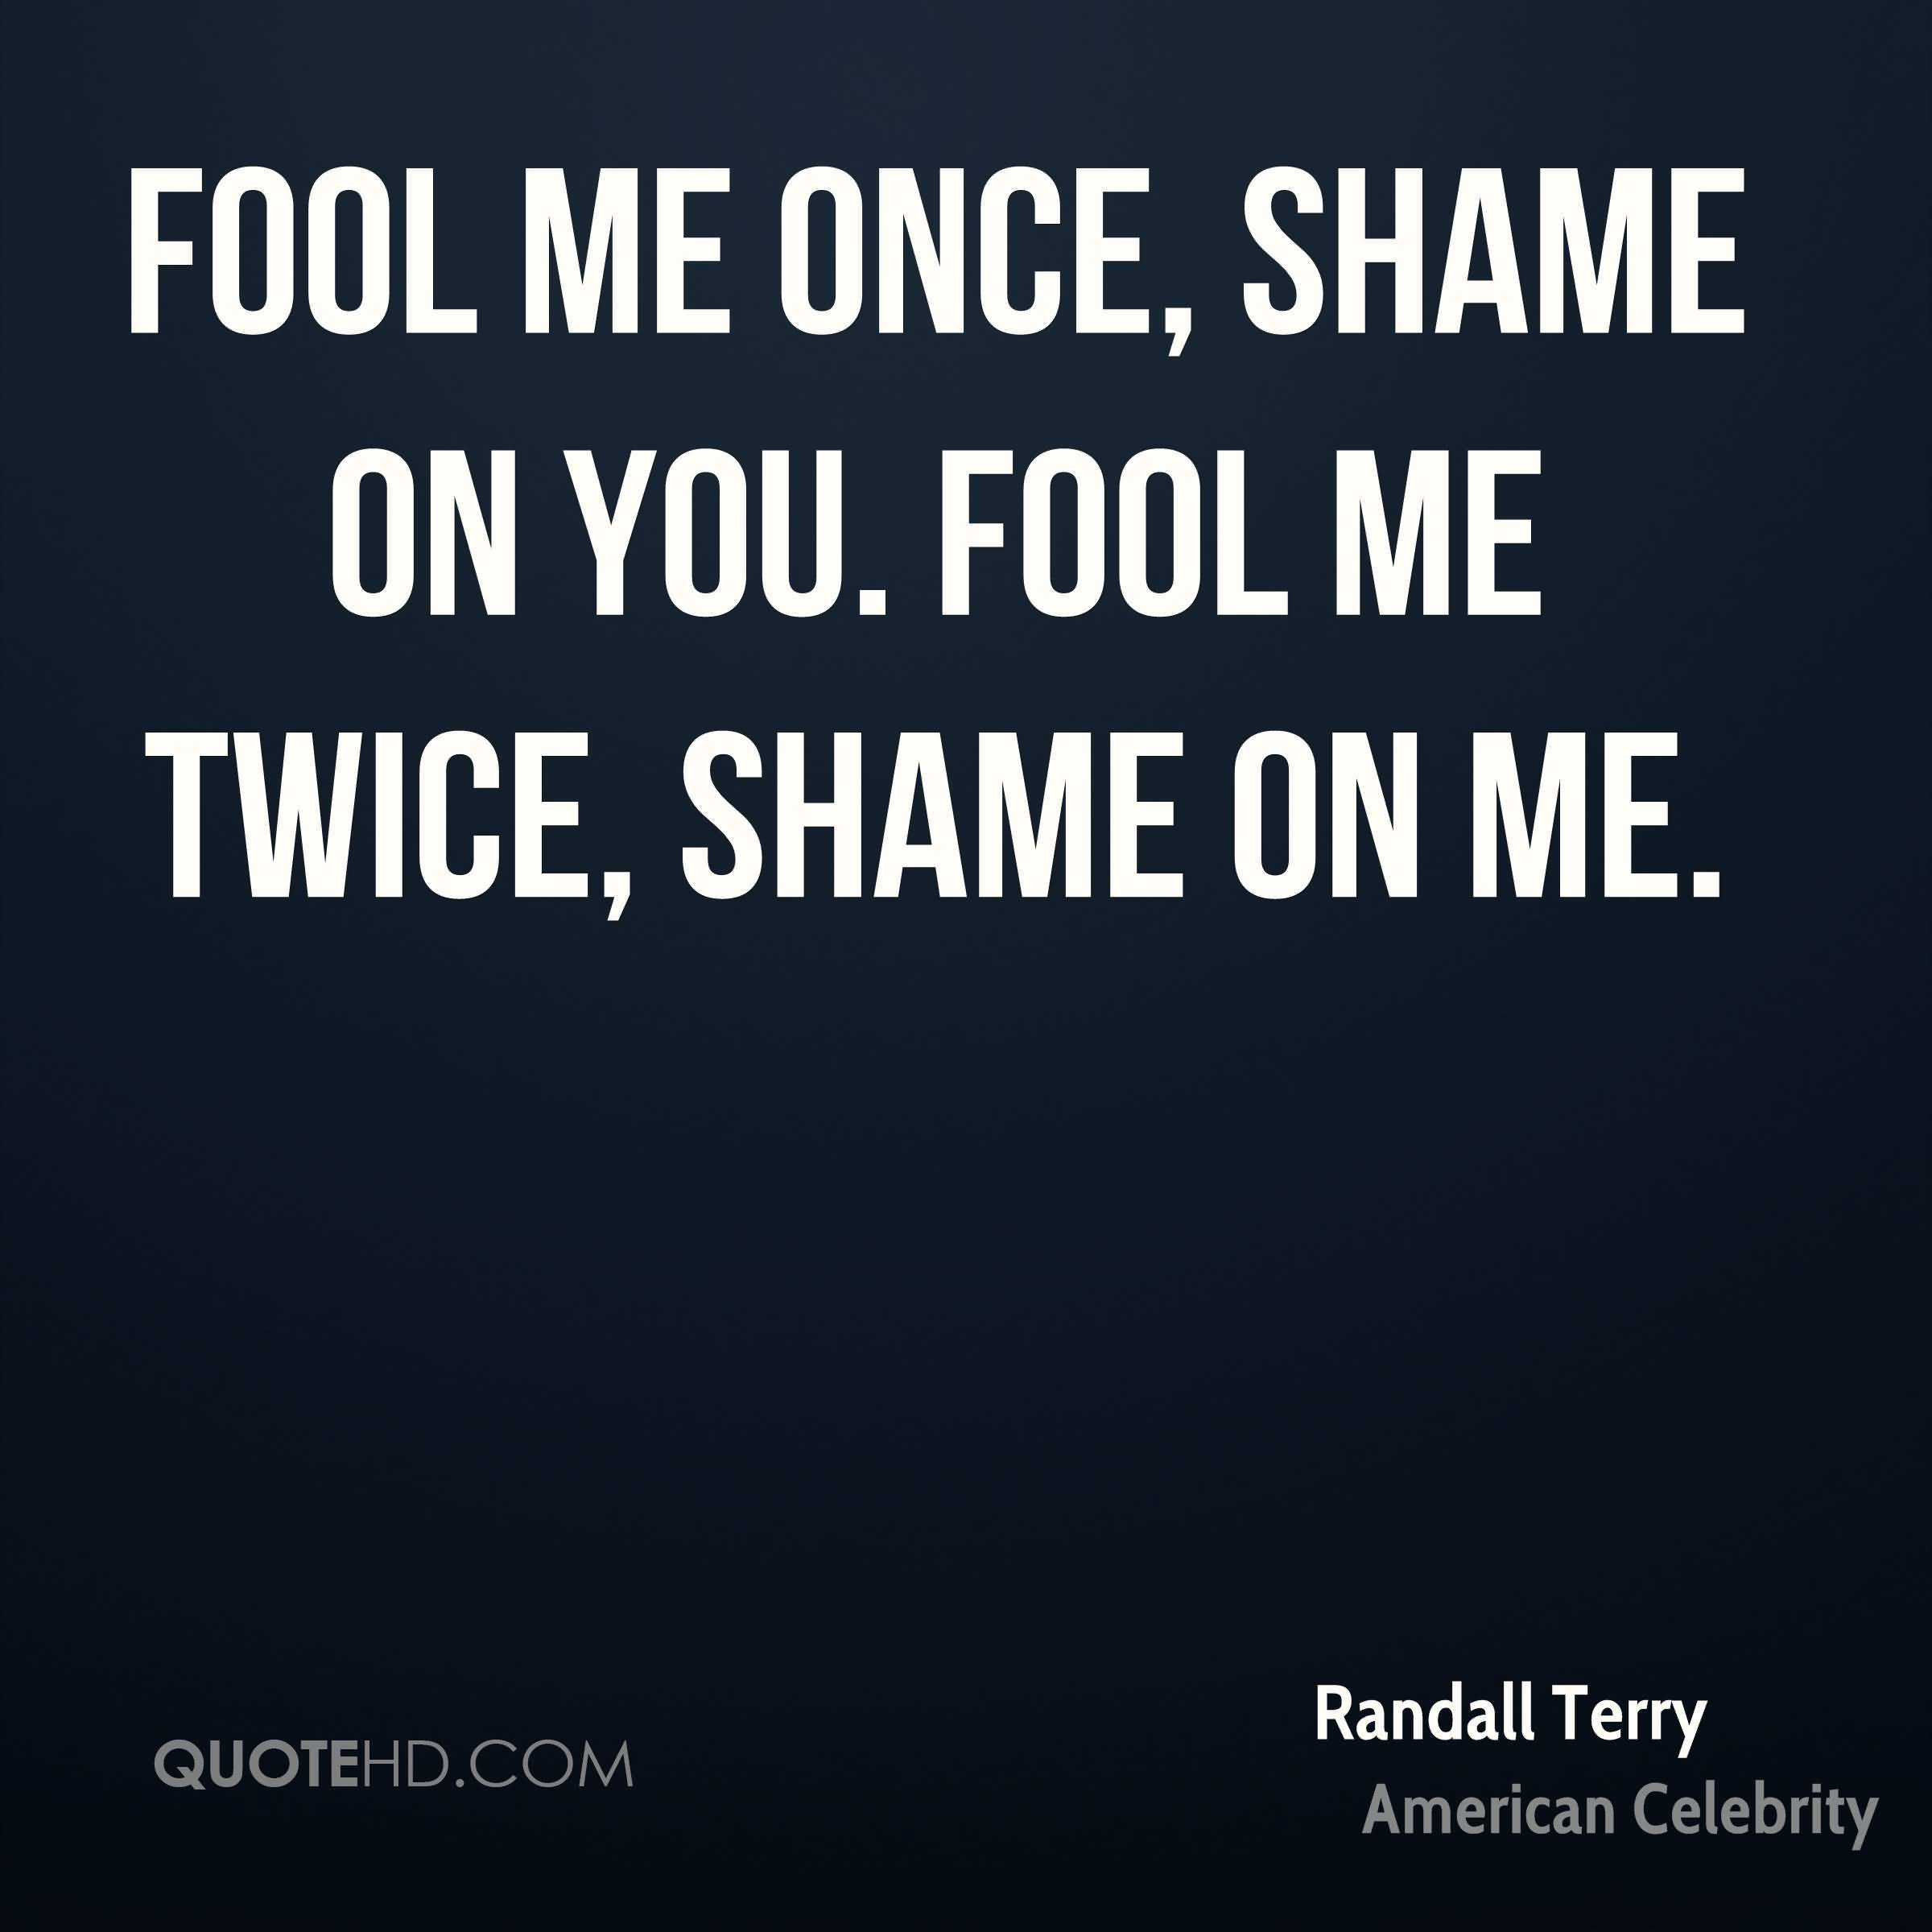 Fool Me Once Shame On You Quotes Meme Image 19